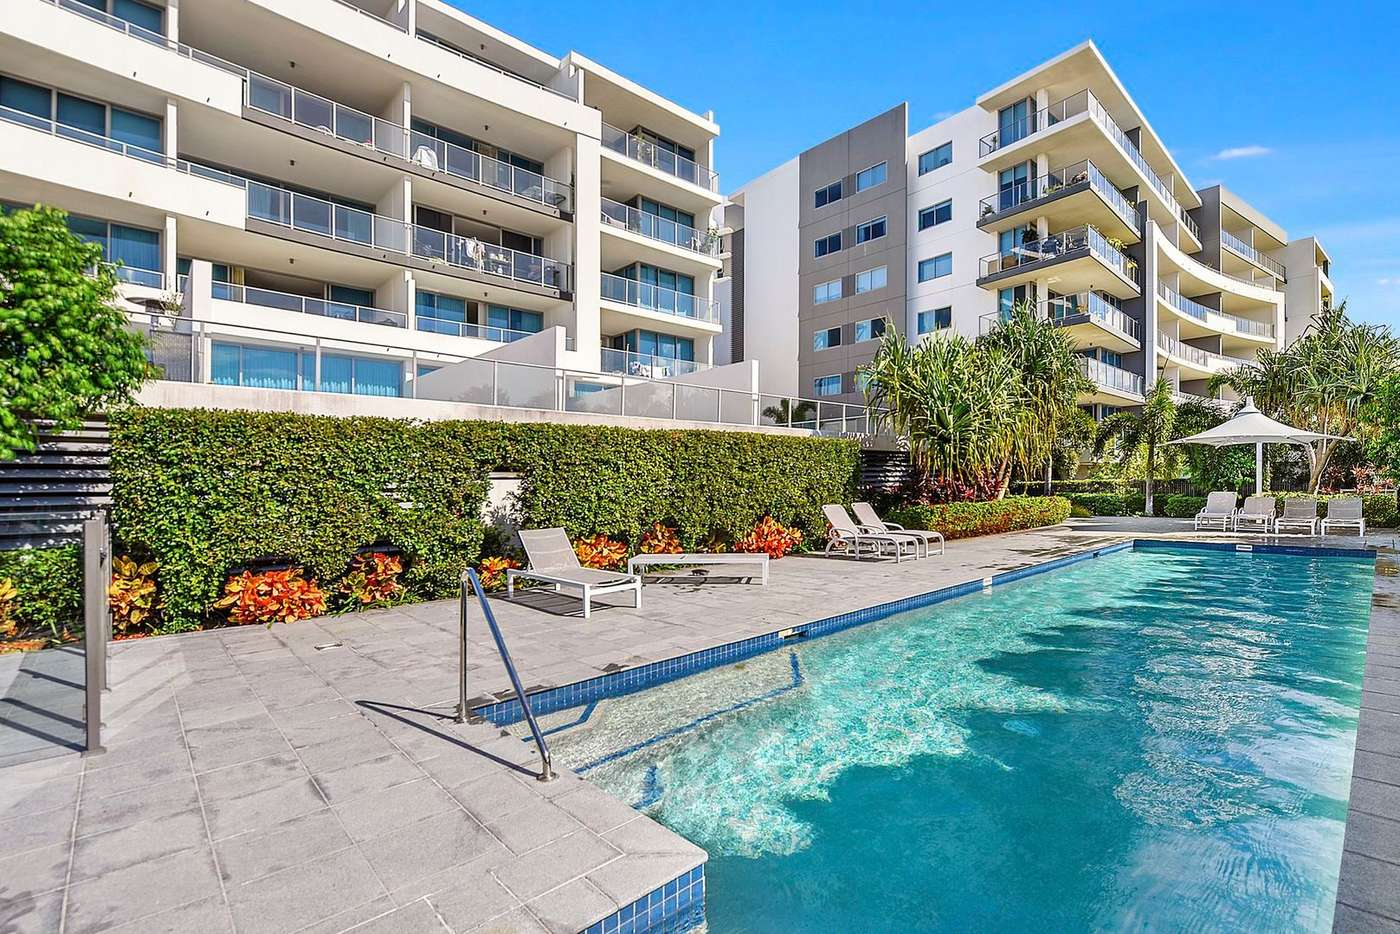 Main view of Homely unit listing, 304/2 East Quay Drive, Biggera Waters QLD 4216